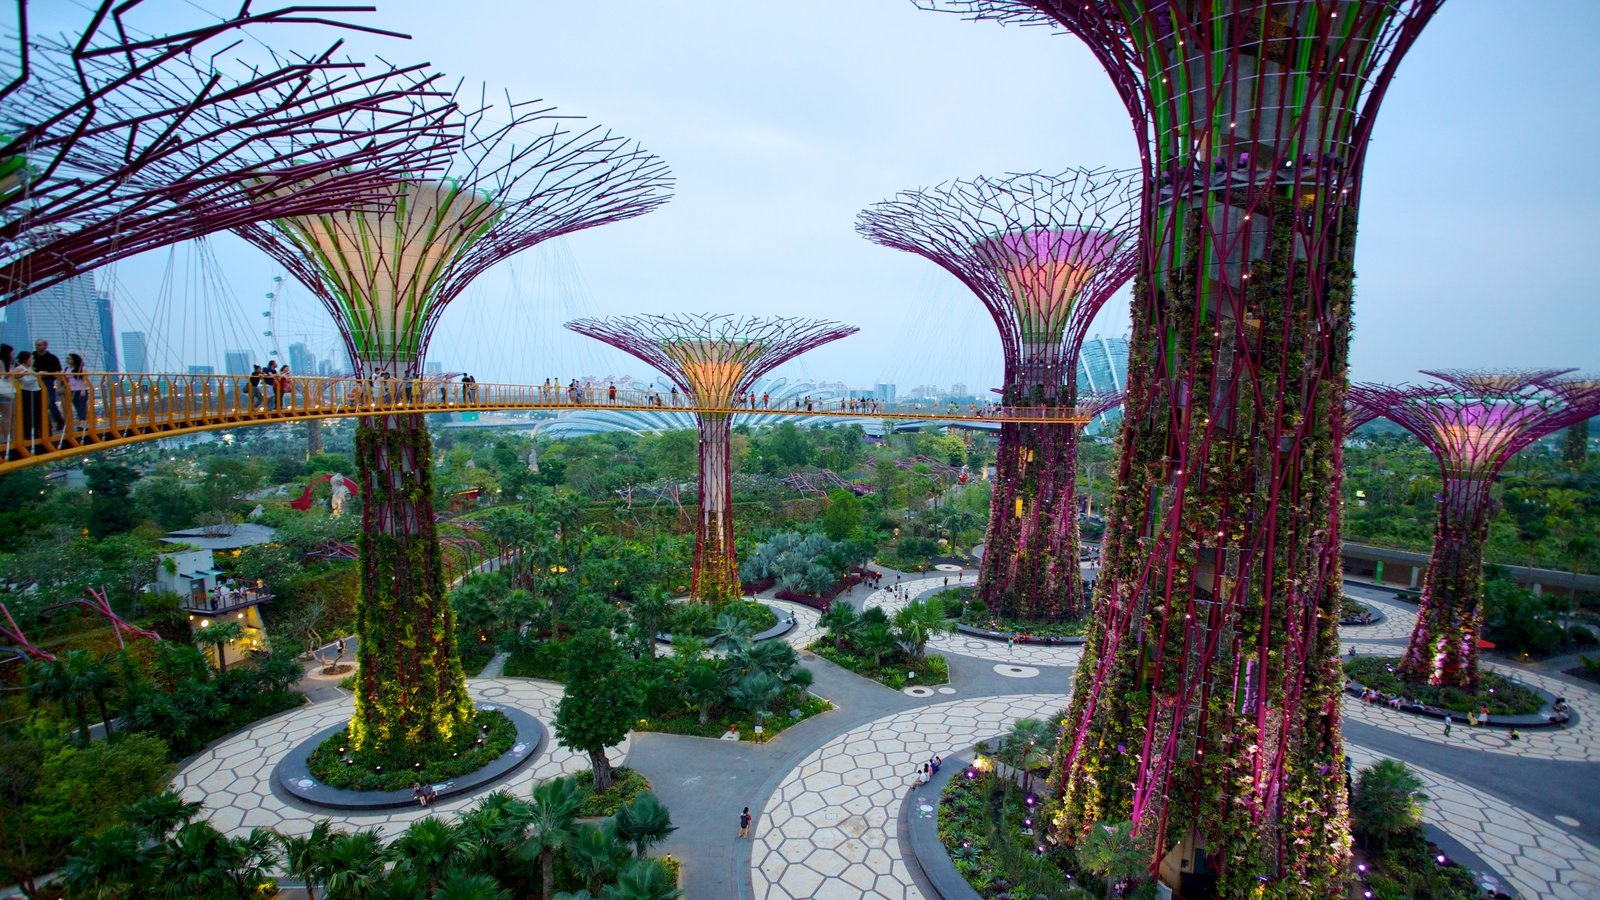 39527-singapore-gardens-by-the-bay